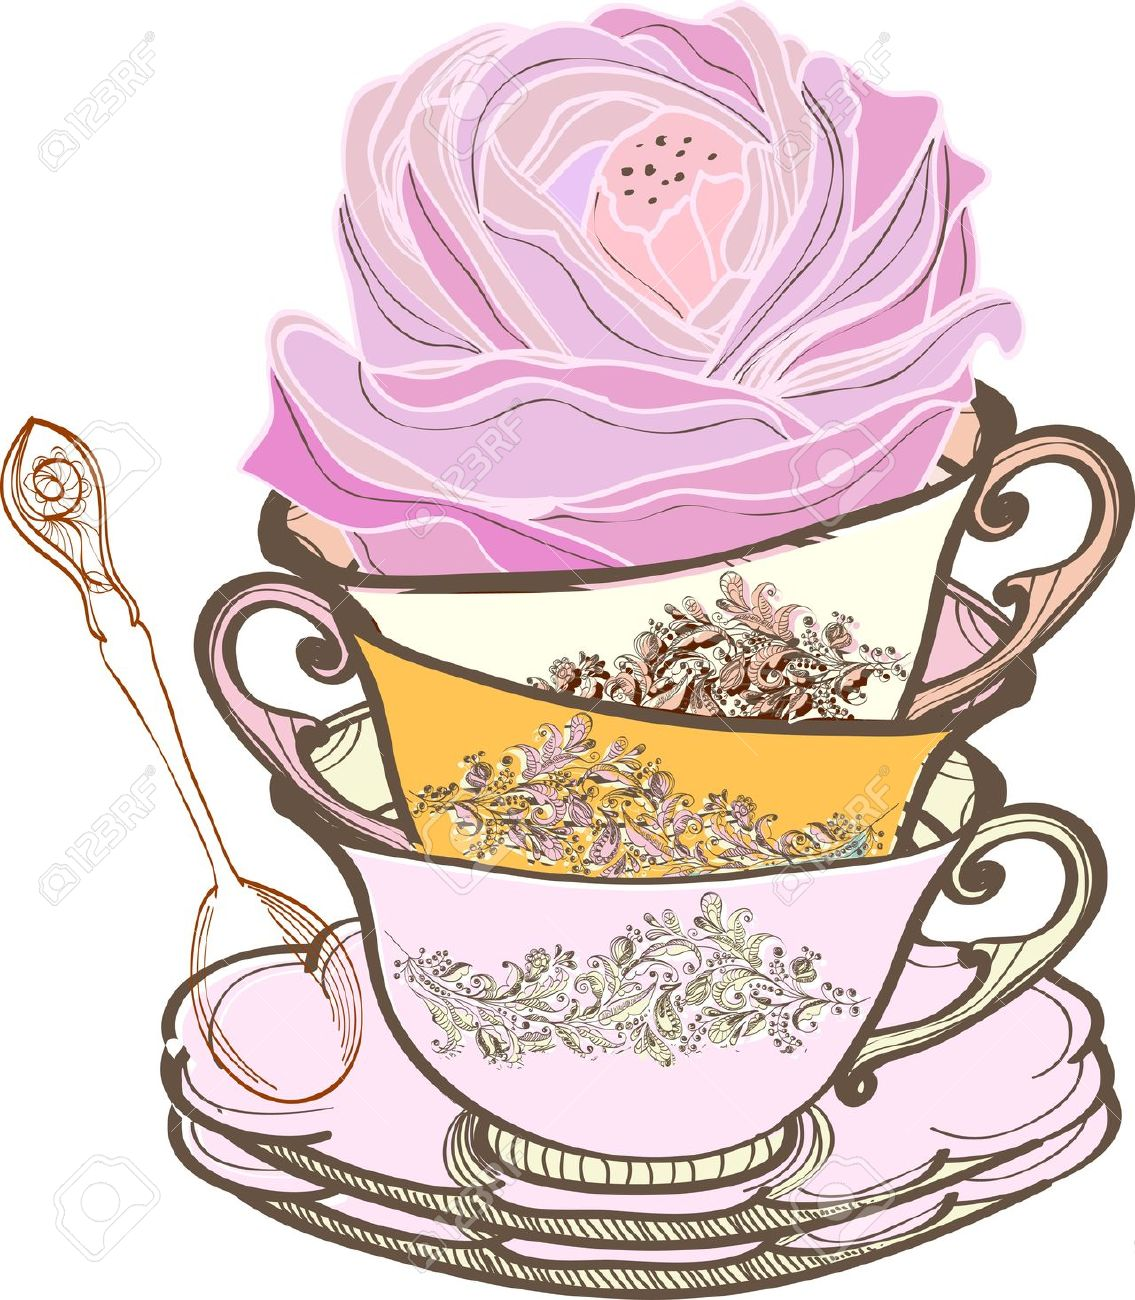 Tea Cups Clipart.